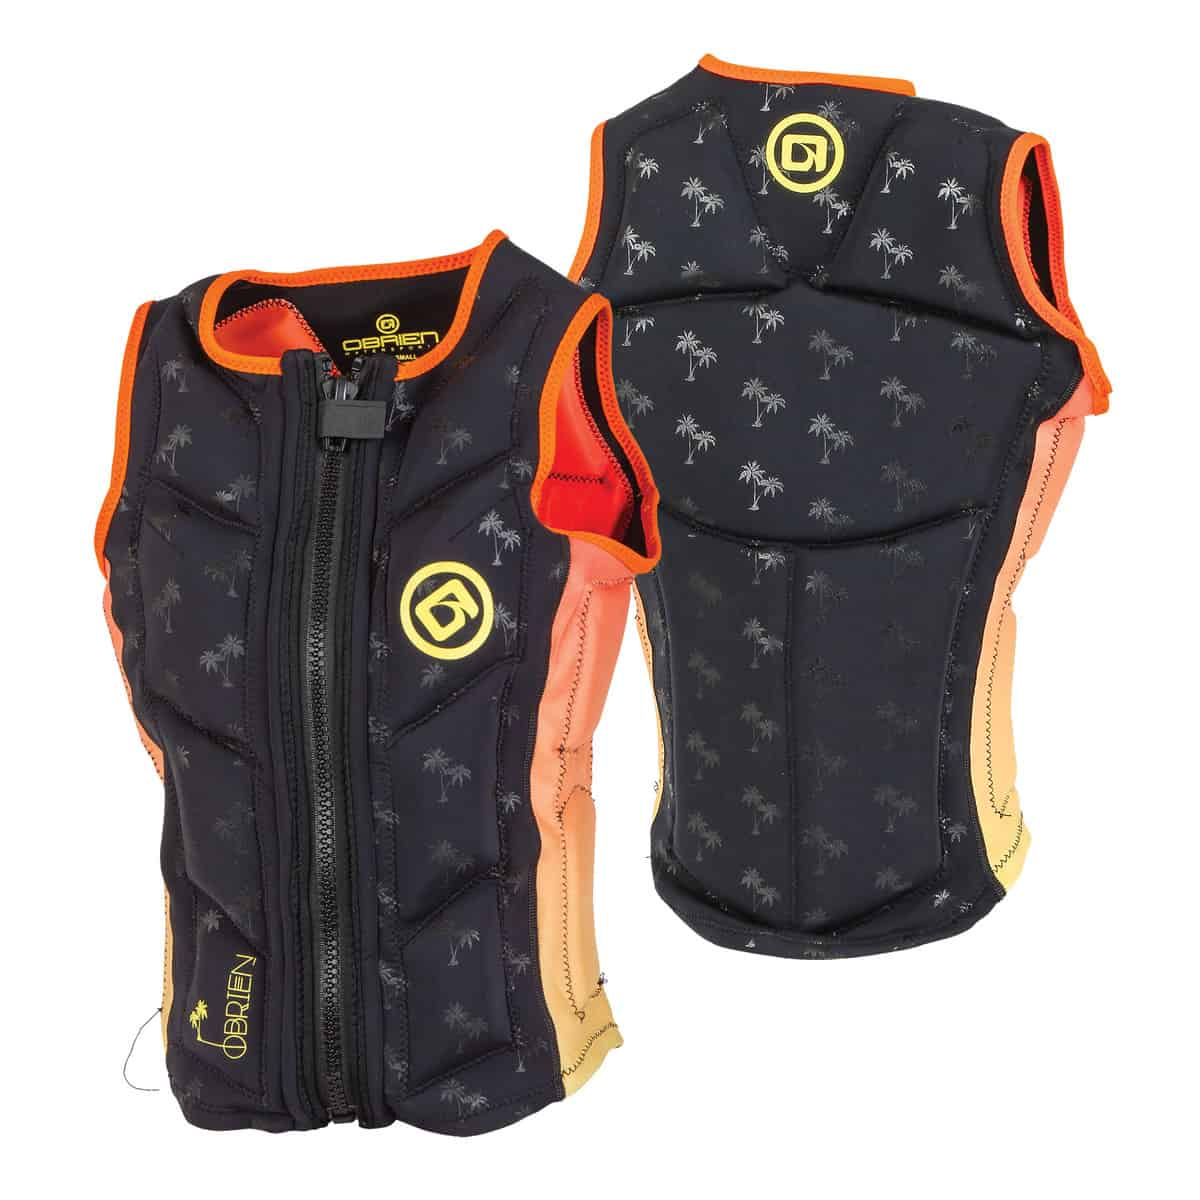 NEW 2018 Obrien Ladies spark vest - Shipwreck Marine